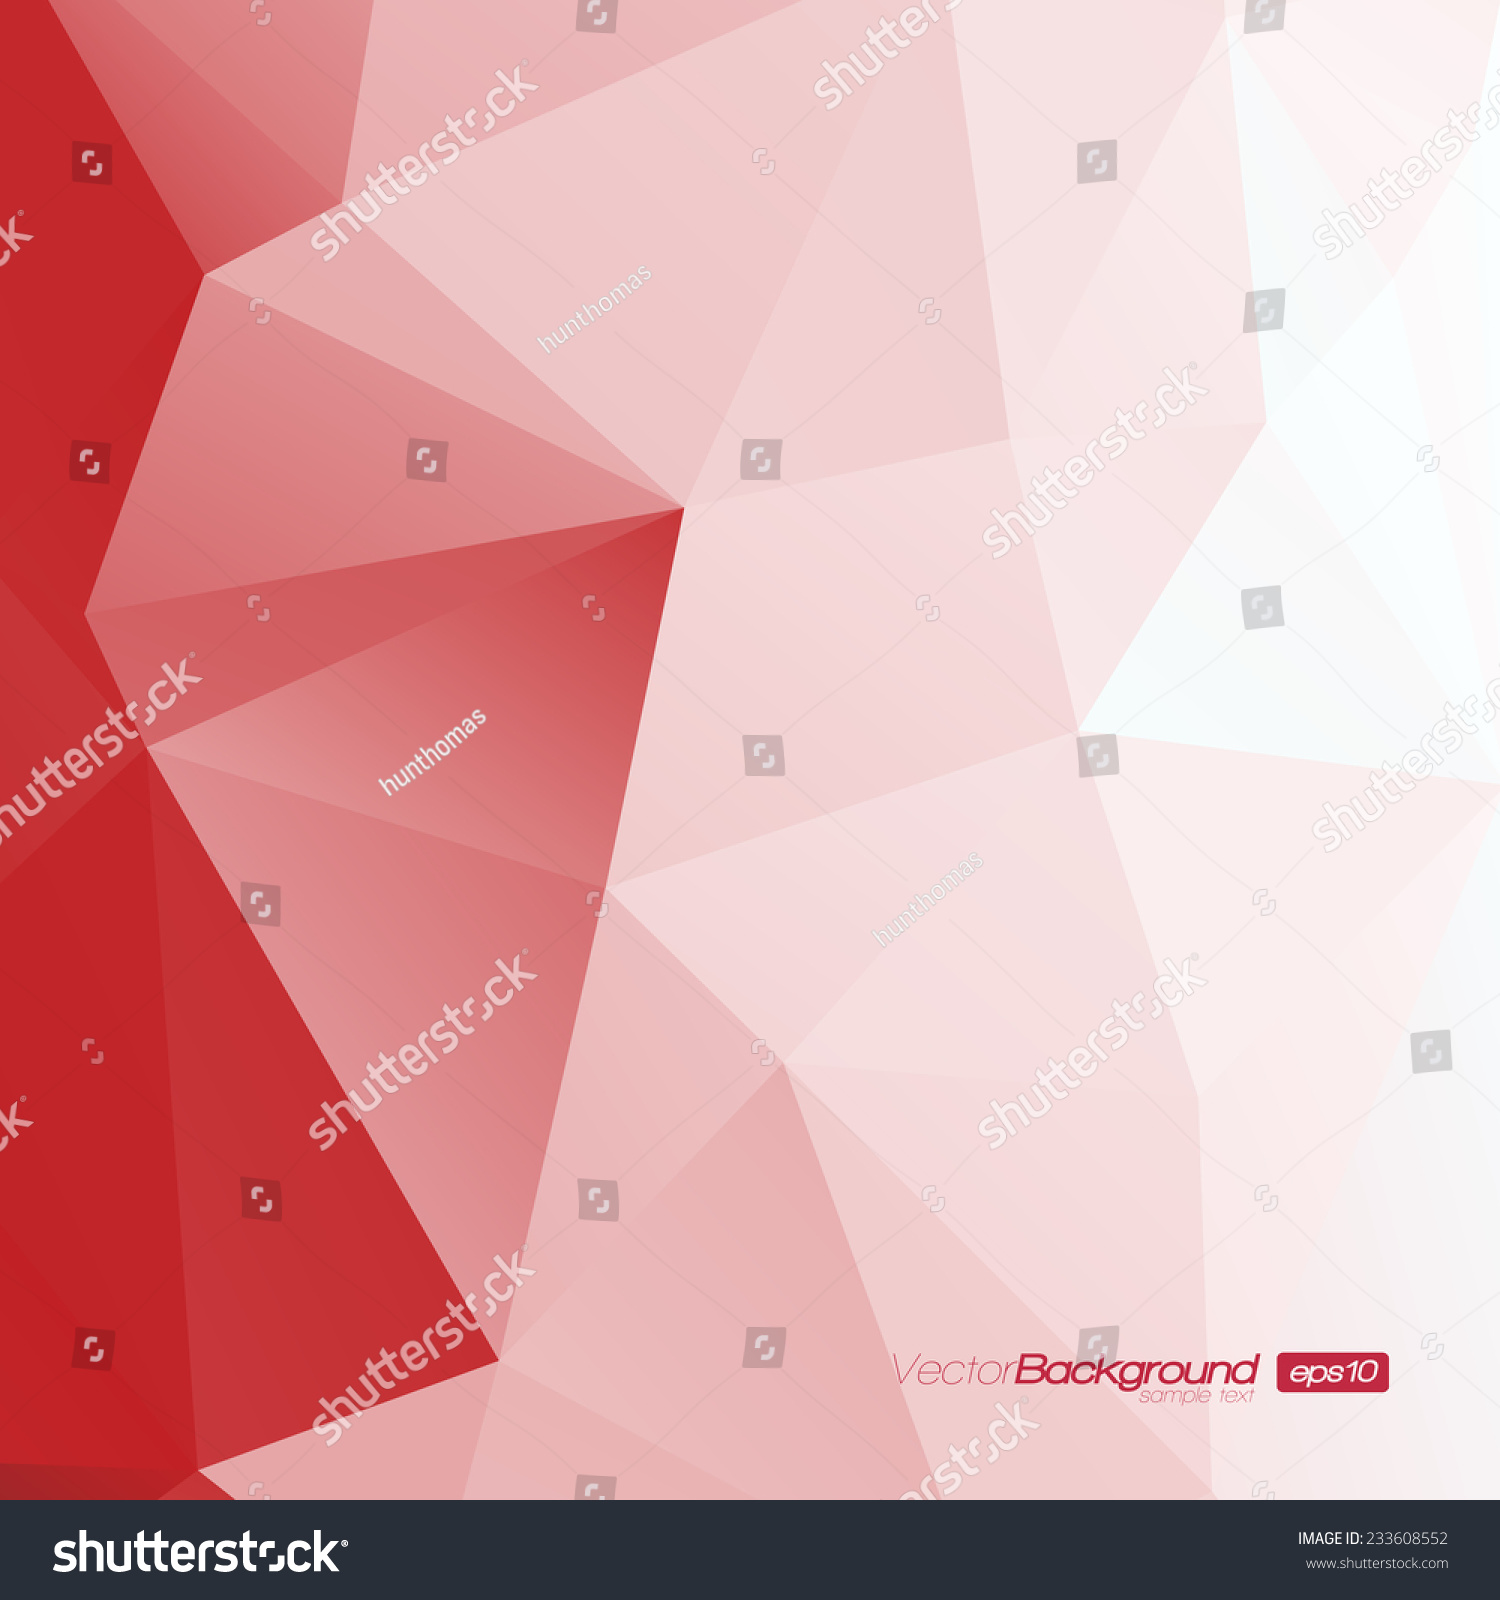 polygon shape abstract design - photo #28